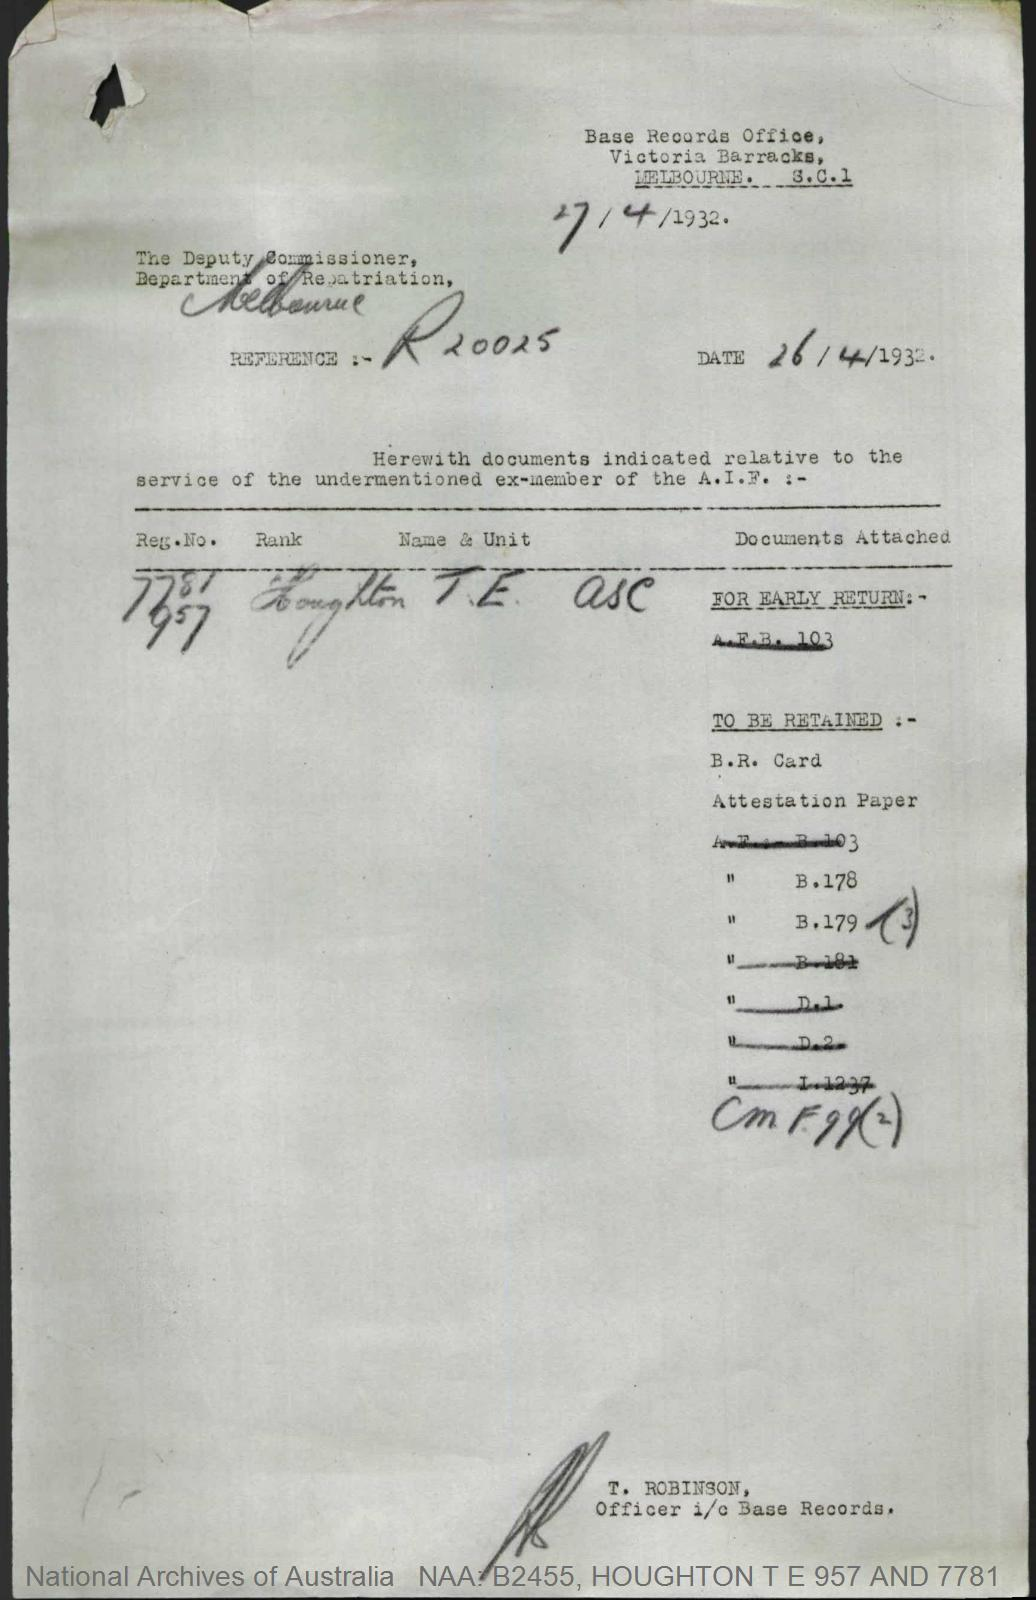 HOUGHTON Thomas Edward : Service Number - 957 and 7781 : Place of Birth - Ellesmere Port England : Place of Enlistment - Sydney NSW : Next of Kin - (Wife) HOUGHTON Clarice M